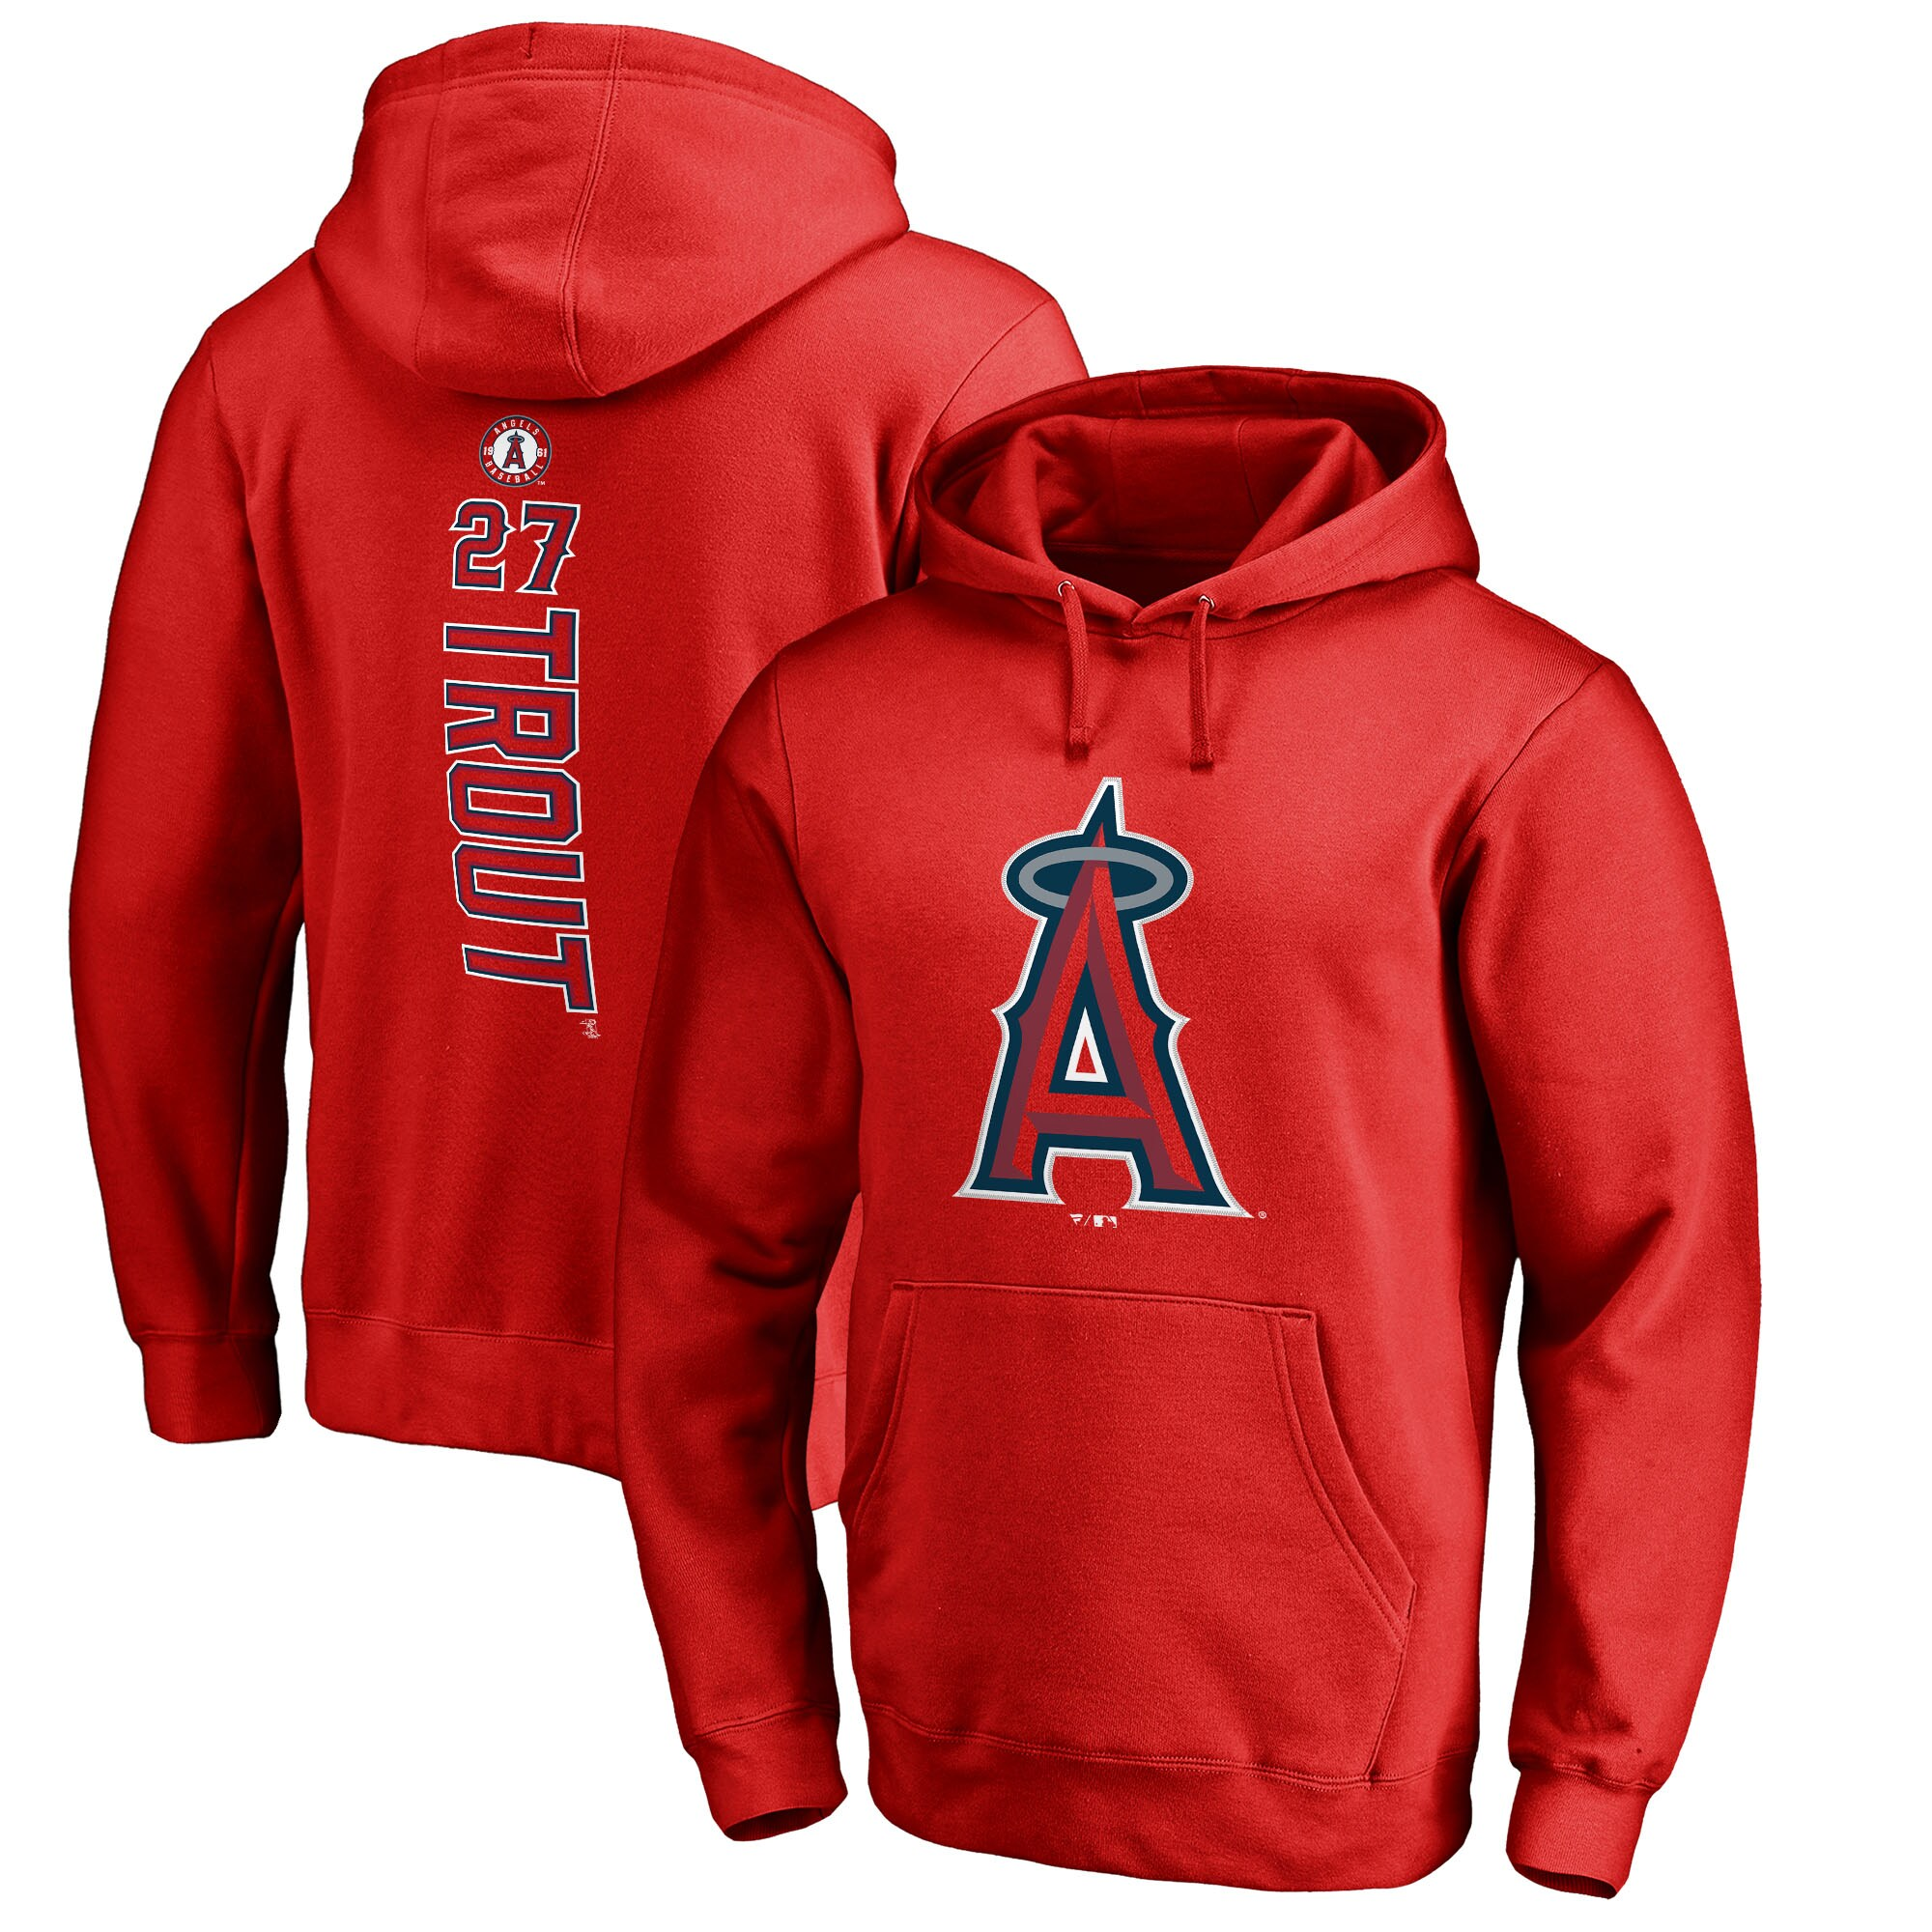 Mike Trout Los Angeles Angels Fanatics Branded Backer Pullover Hoodie - Red